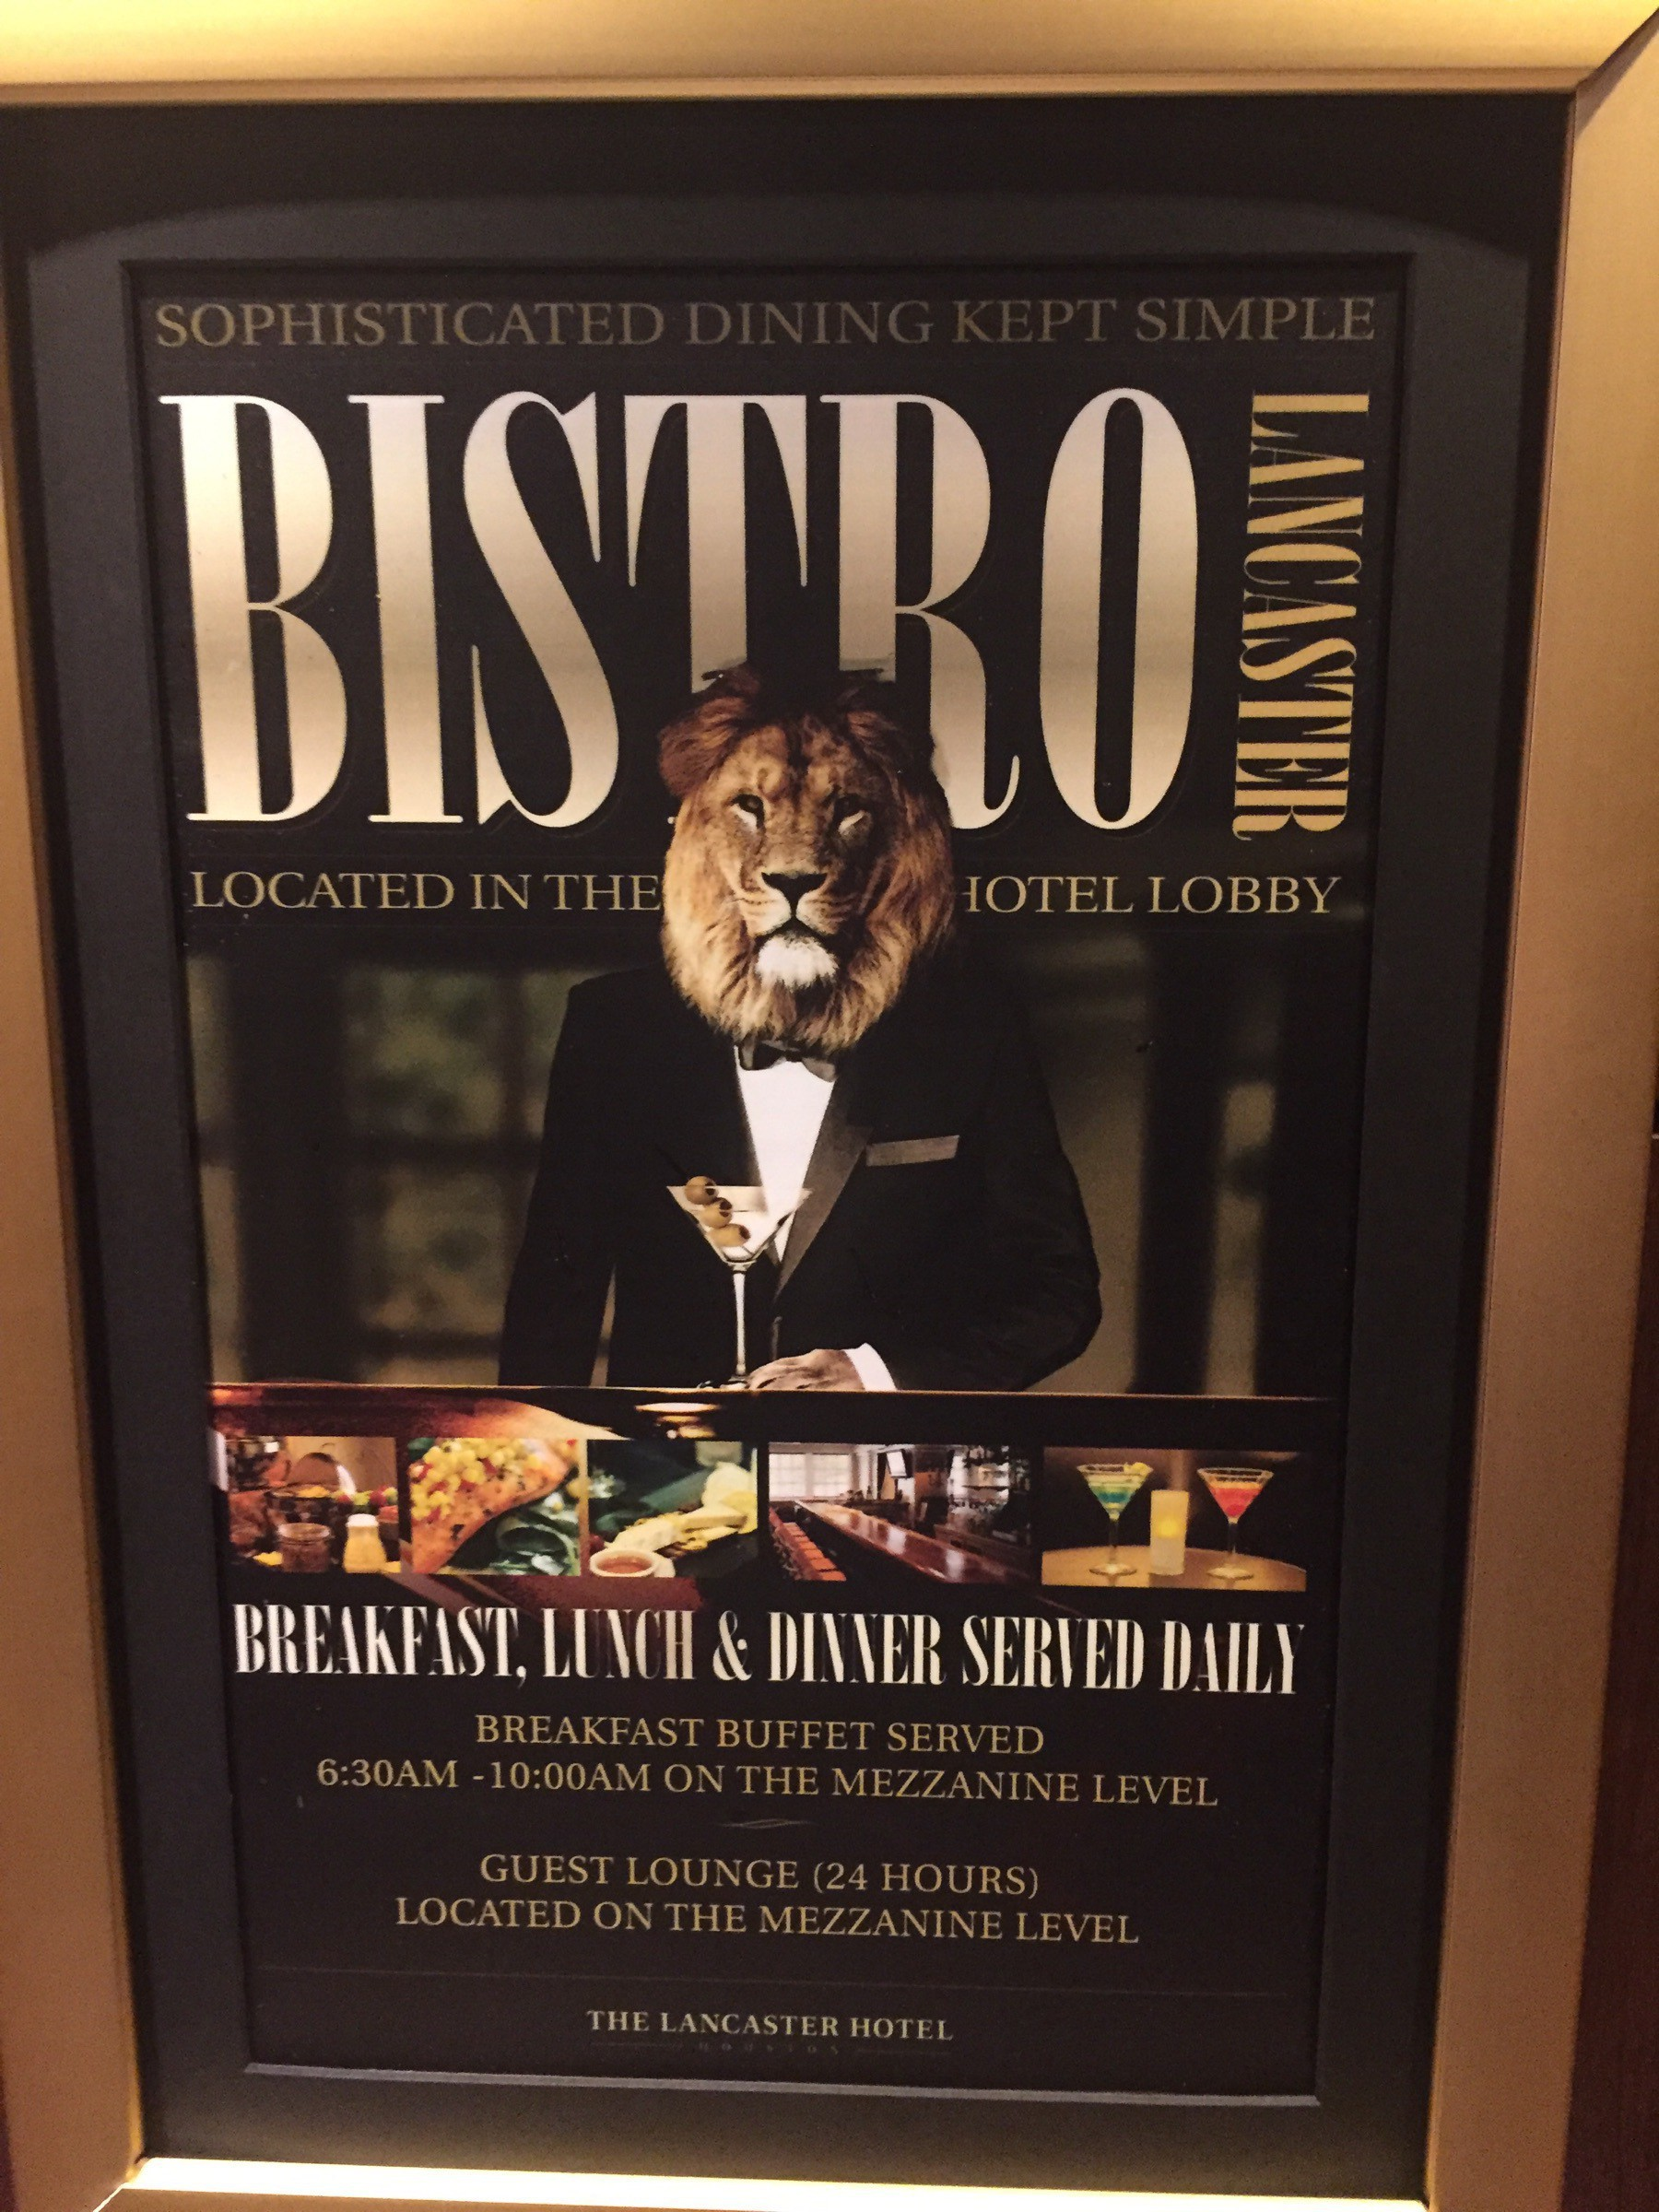 A sign advertising the Bistro Lancaster featuring a bartender with the head of a lion.